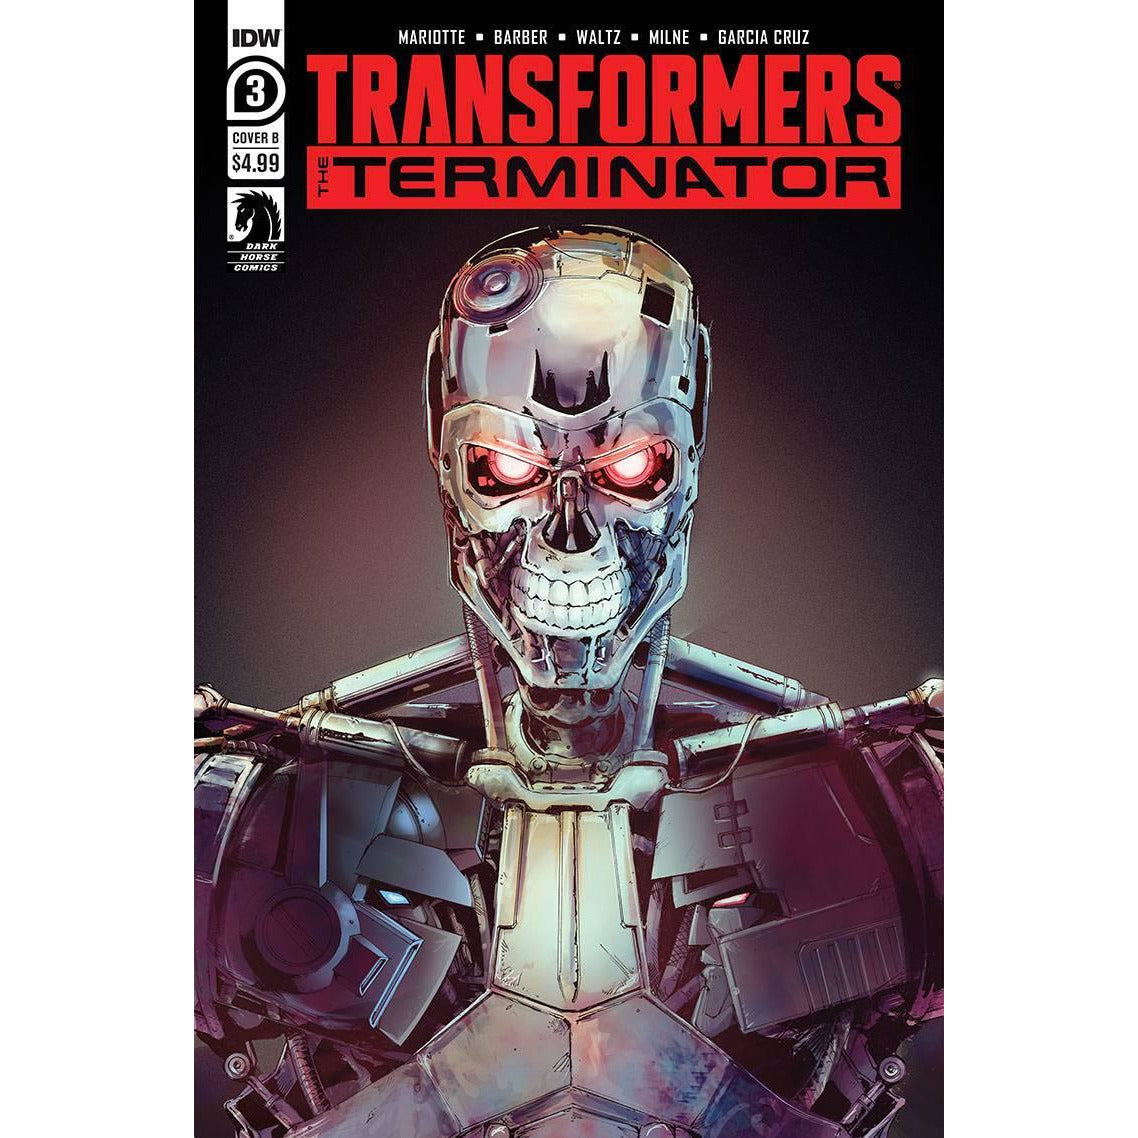 TRANSFORMERS VS TERMINATOR #3 (OF 4) - COVER B GRIFFITH